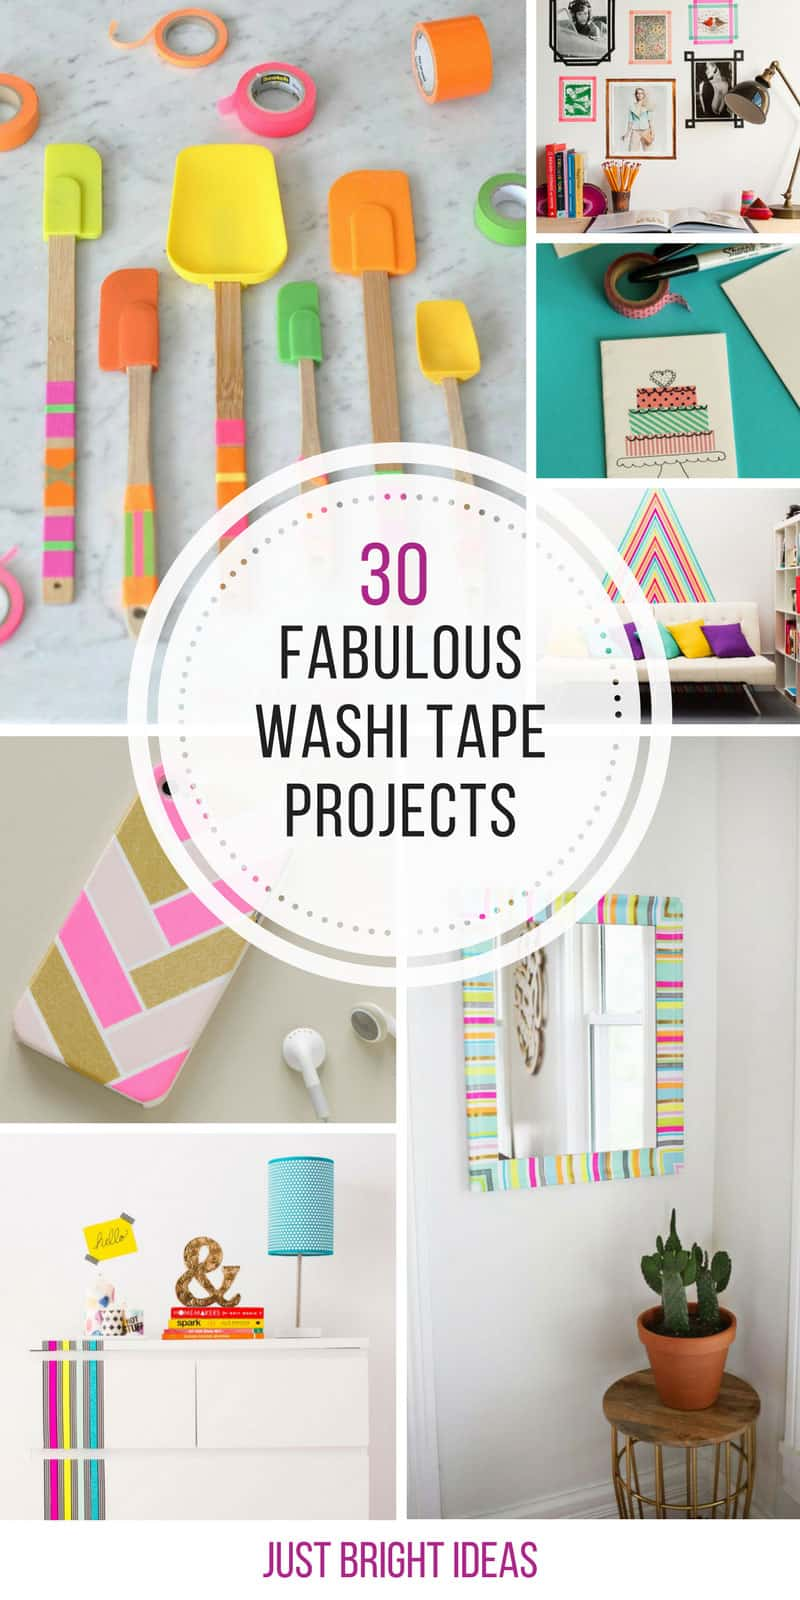 Loving these Washi Tape projects! Thanks for sharing!